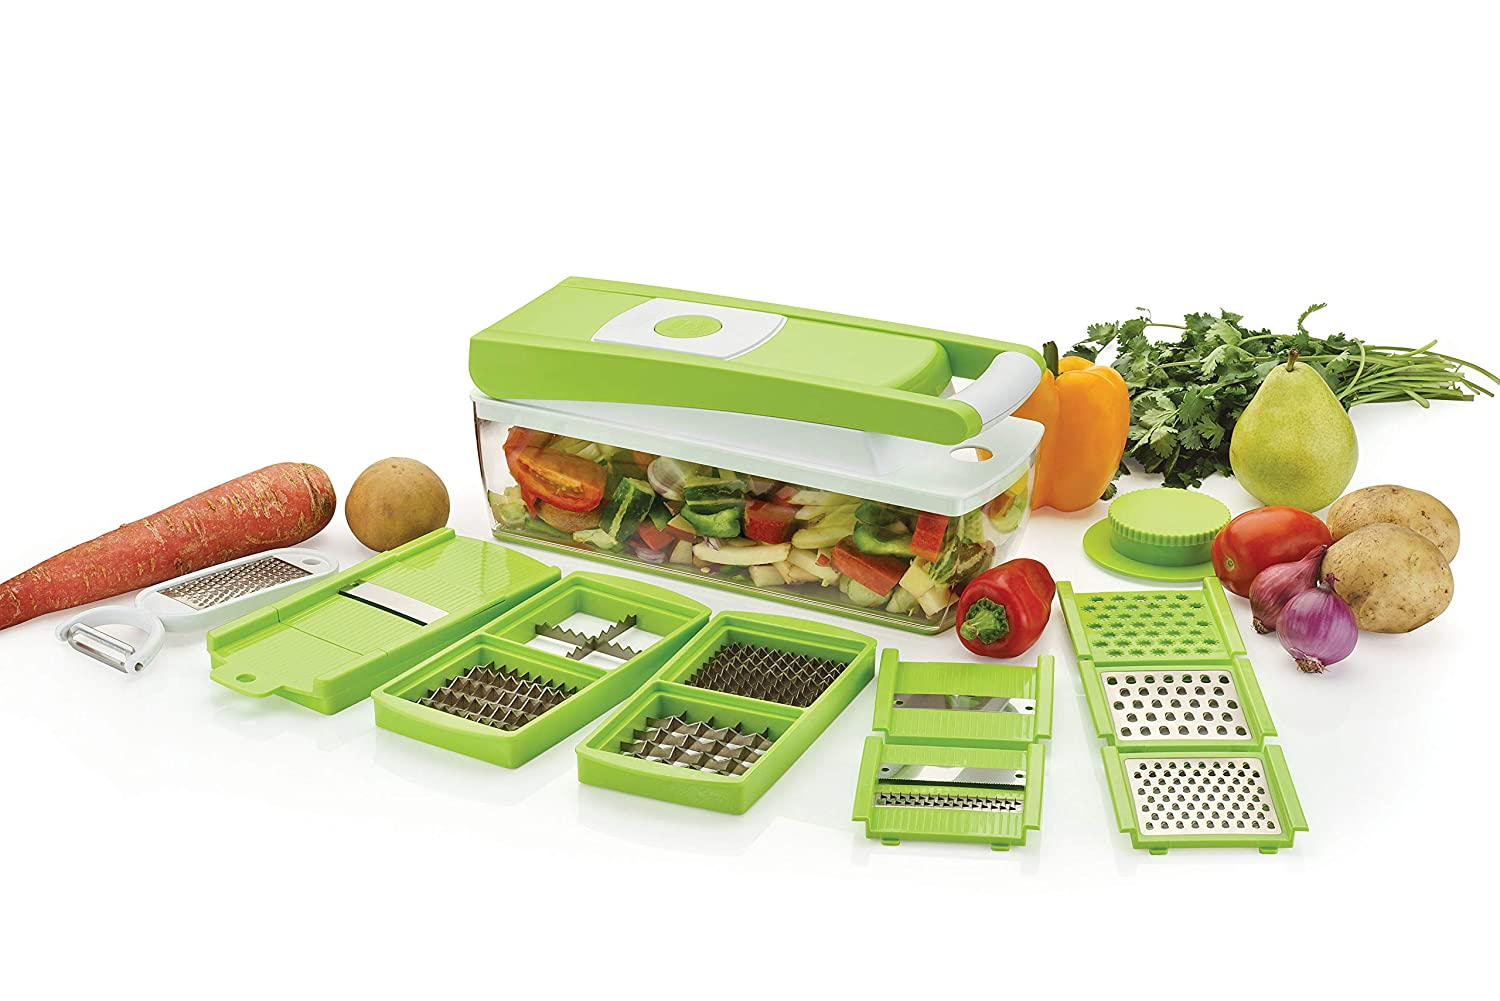 Top 3 Best Vegetable Chopper In India 2020